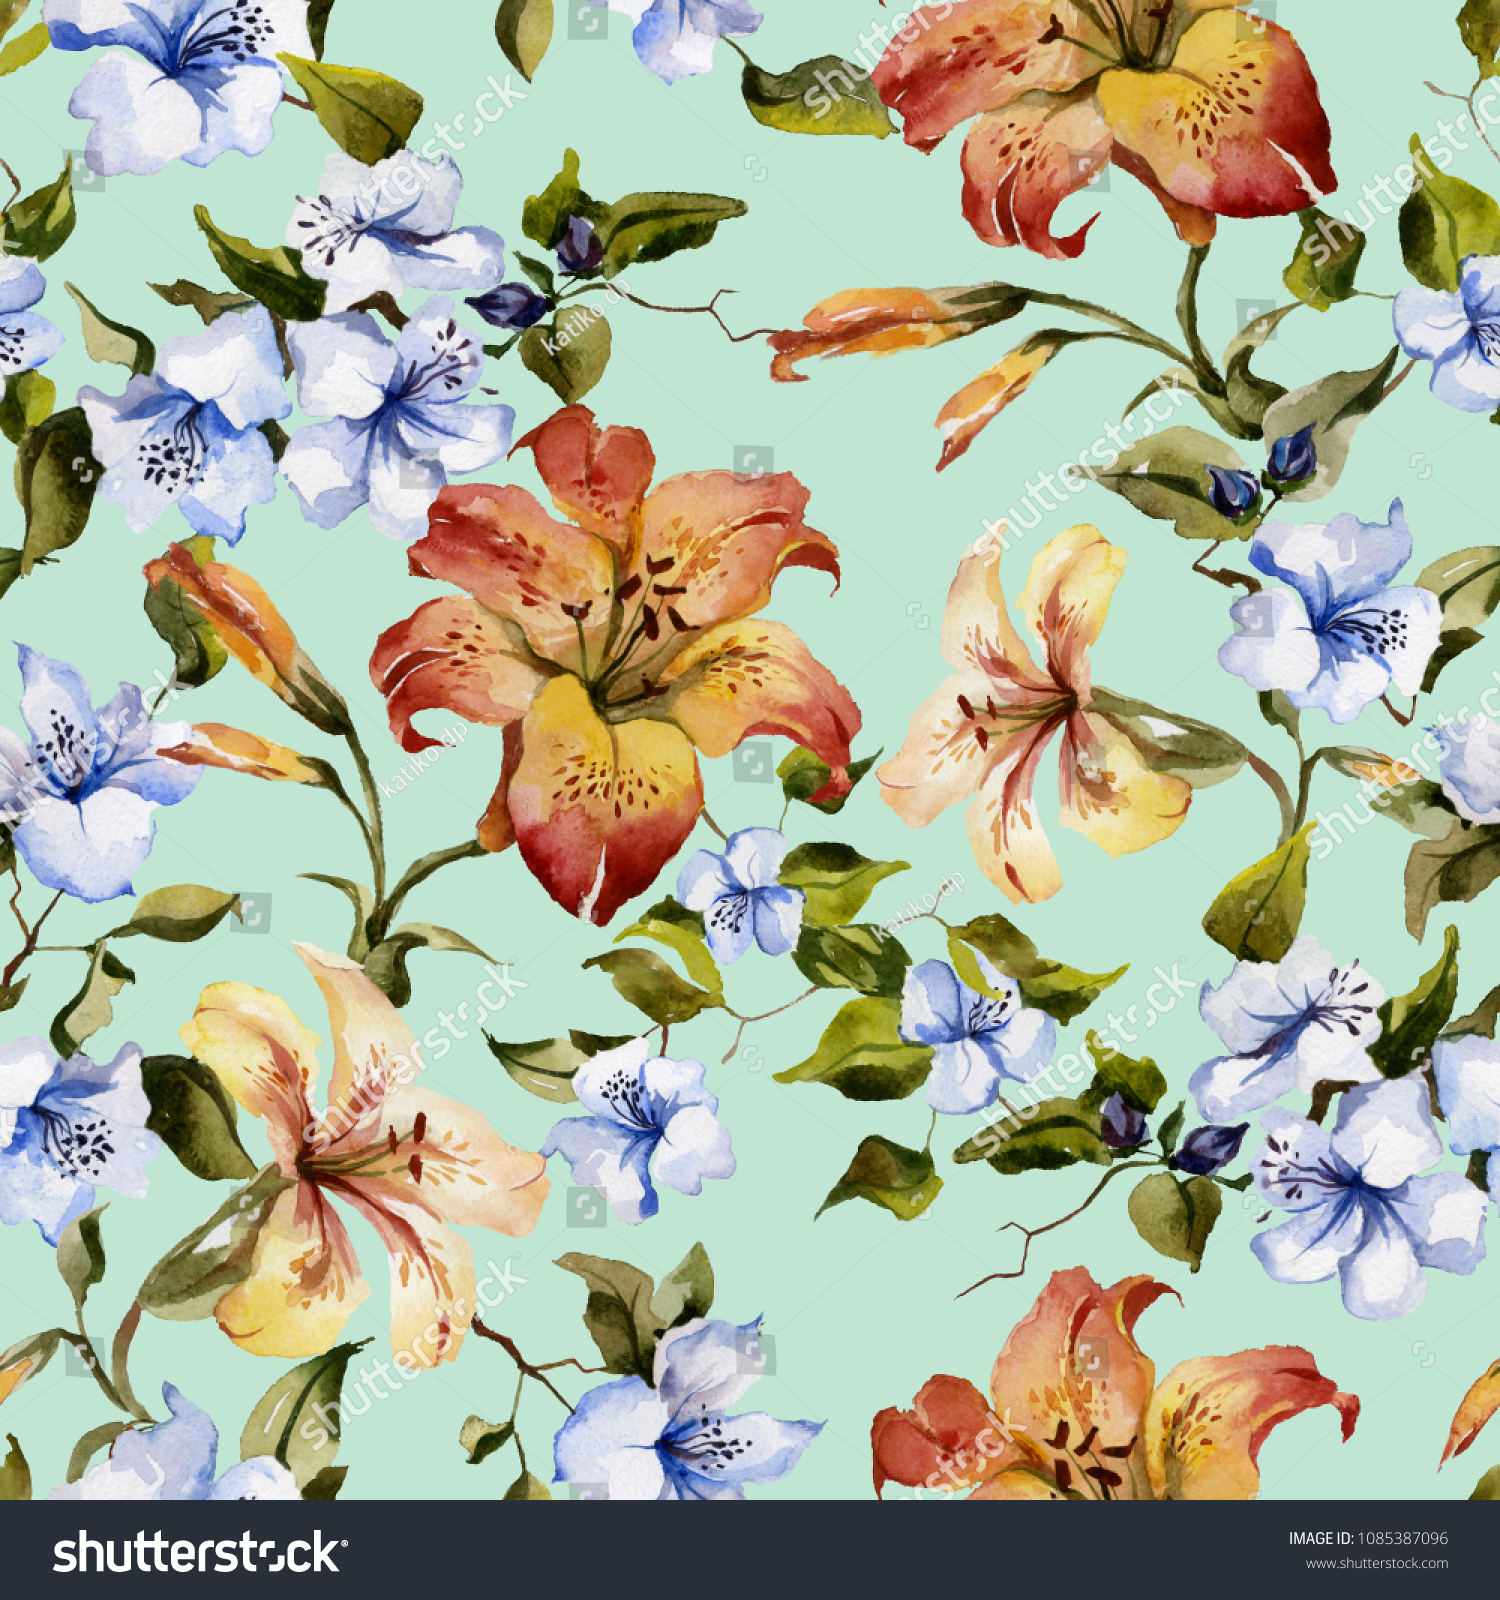 Beautiful tiger lilies small blue flowers stock illustration beautiful tiger lilies and small blue flowers on twigs against light blue background seamless floral izmirmasajfo